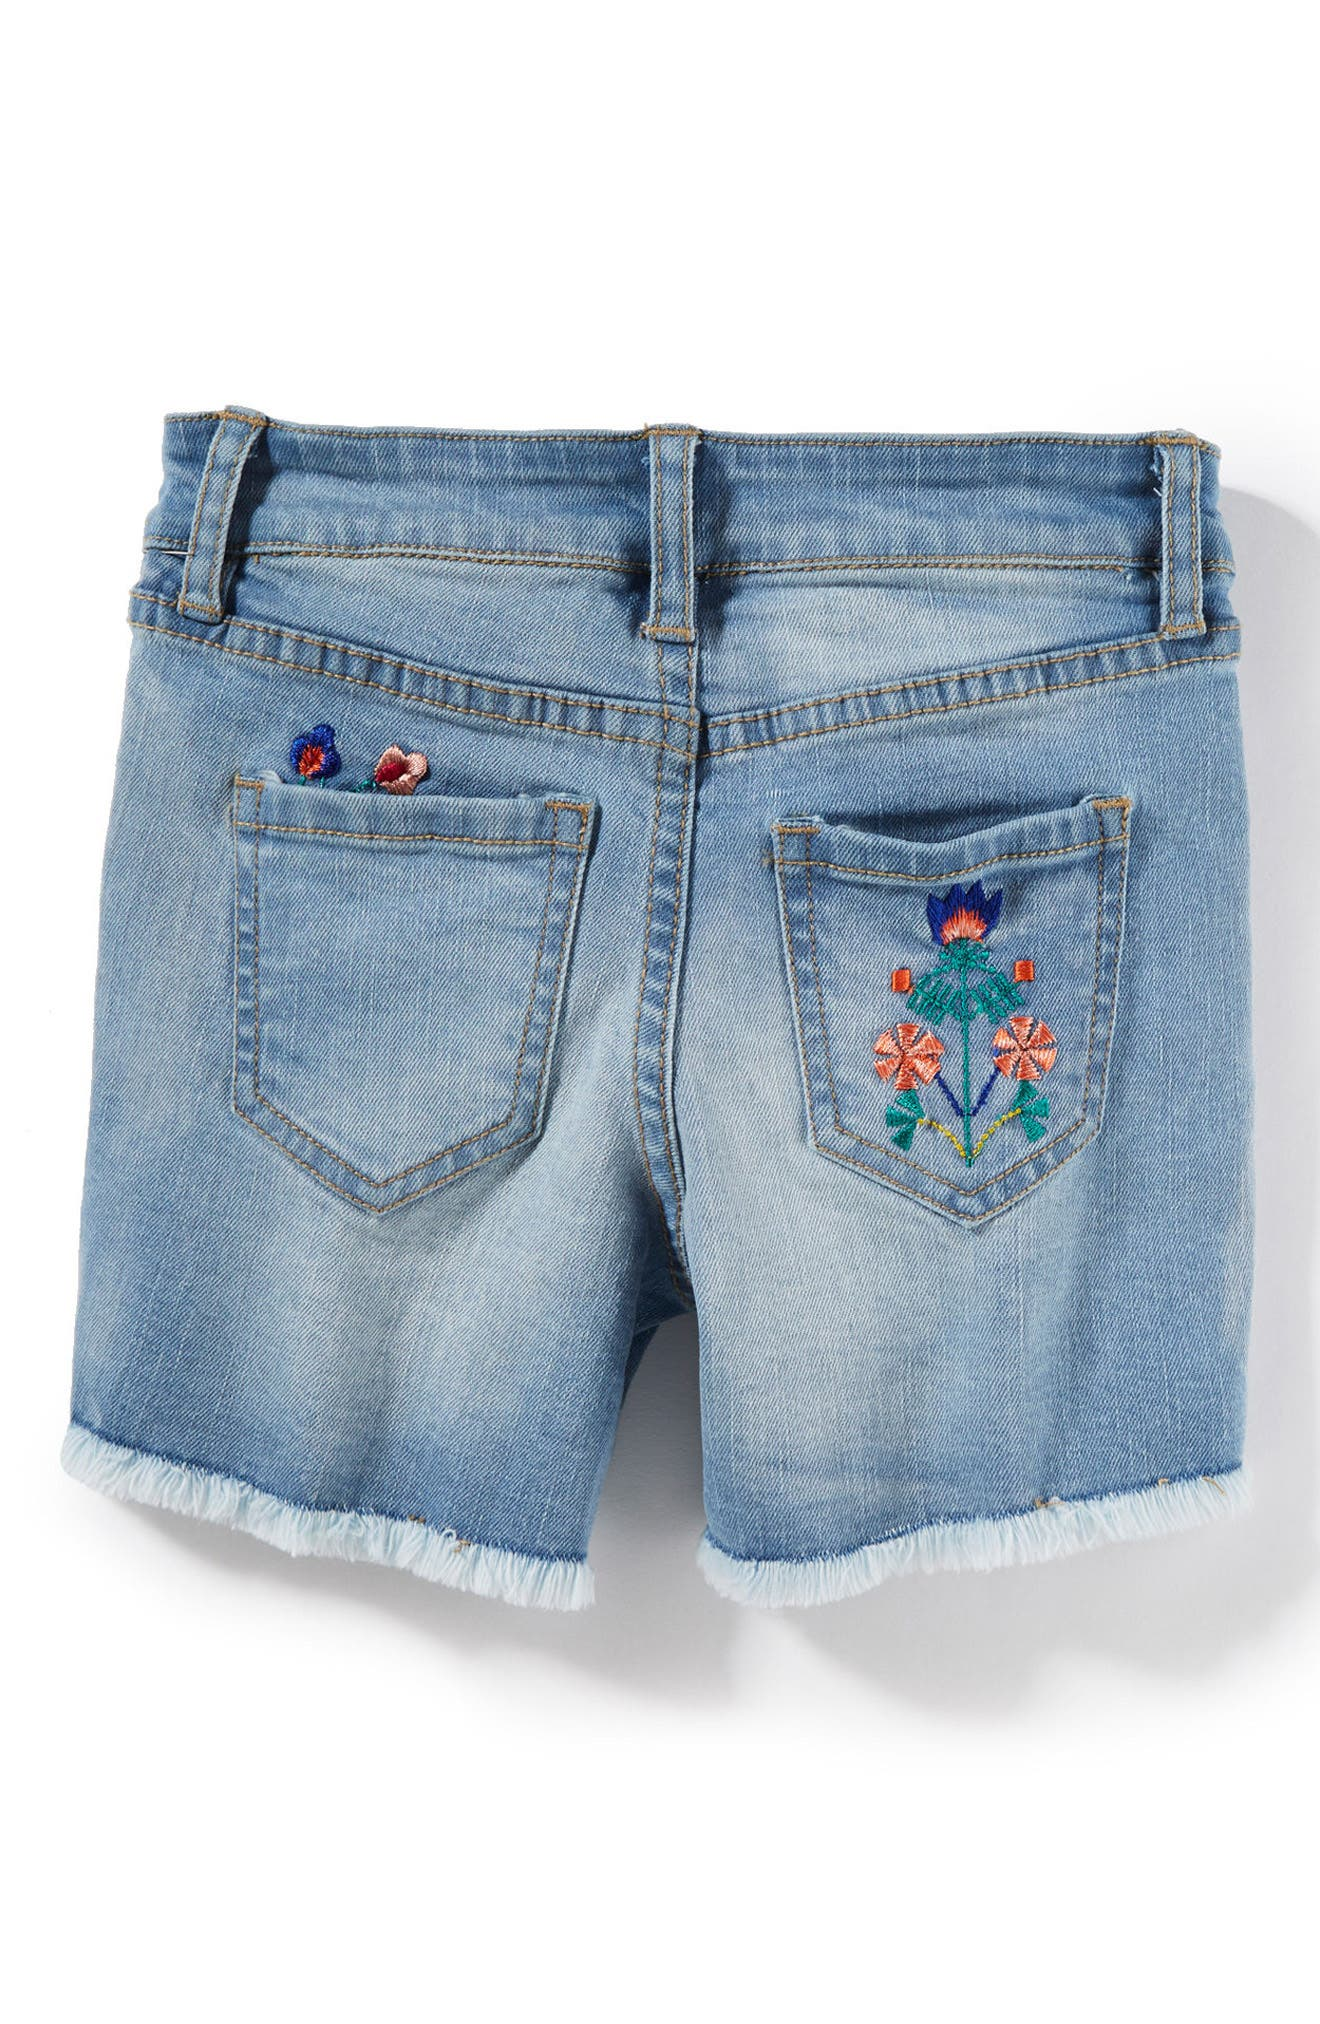 Griffin Embroidered Shorts,                             Alternate thumbnail 2, color,                             453